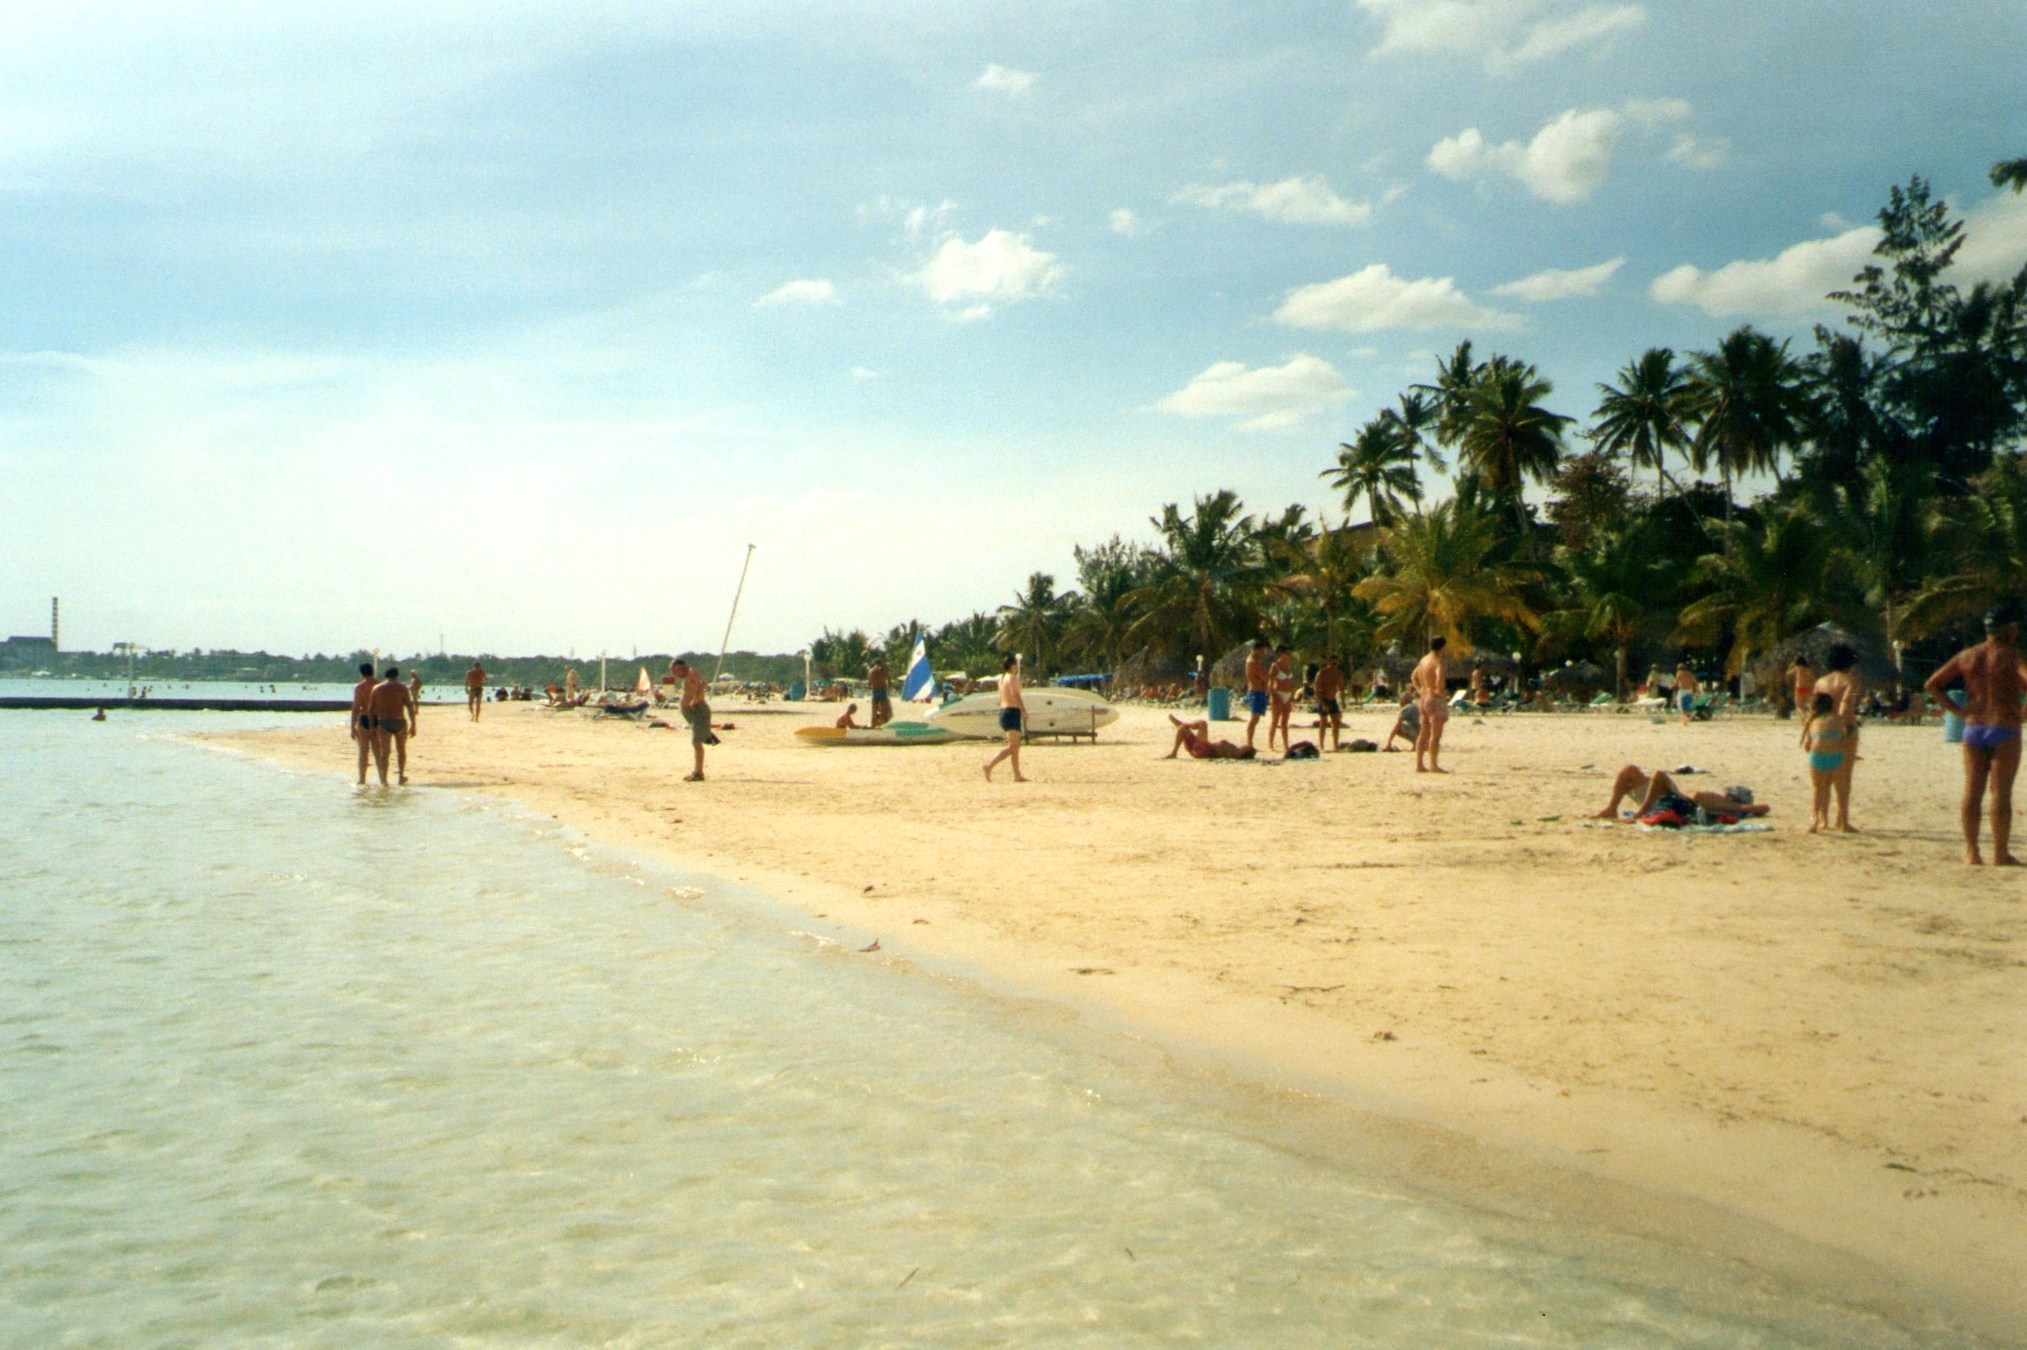 Boca Chica, Dominican Republic - February 21, 2006: Tourists relaxing on the white sandy beach surrounded by palm trees at Boca Chica, along Dominican Republic southern coastline